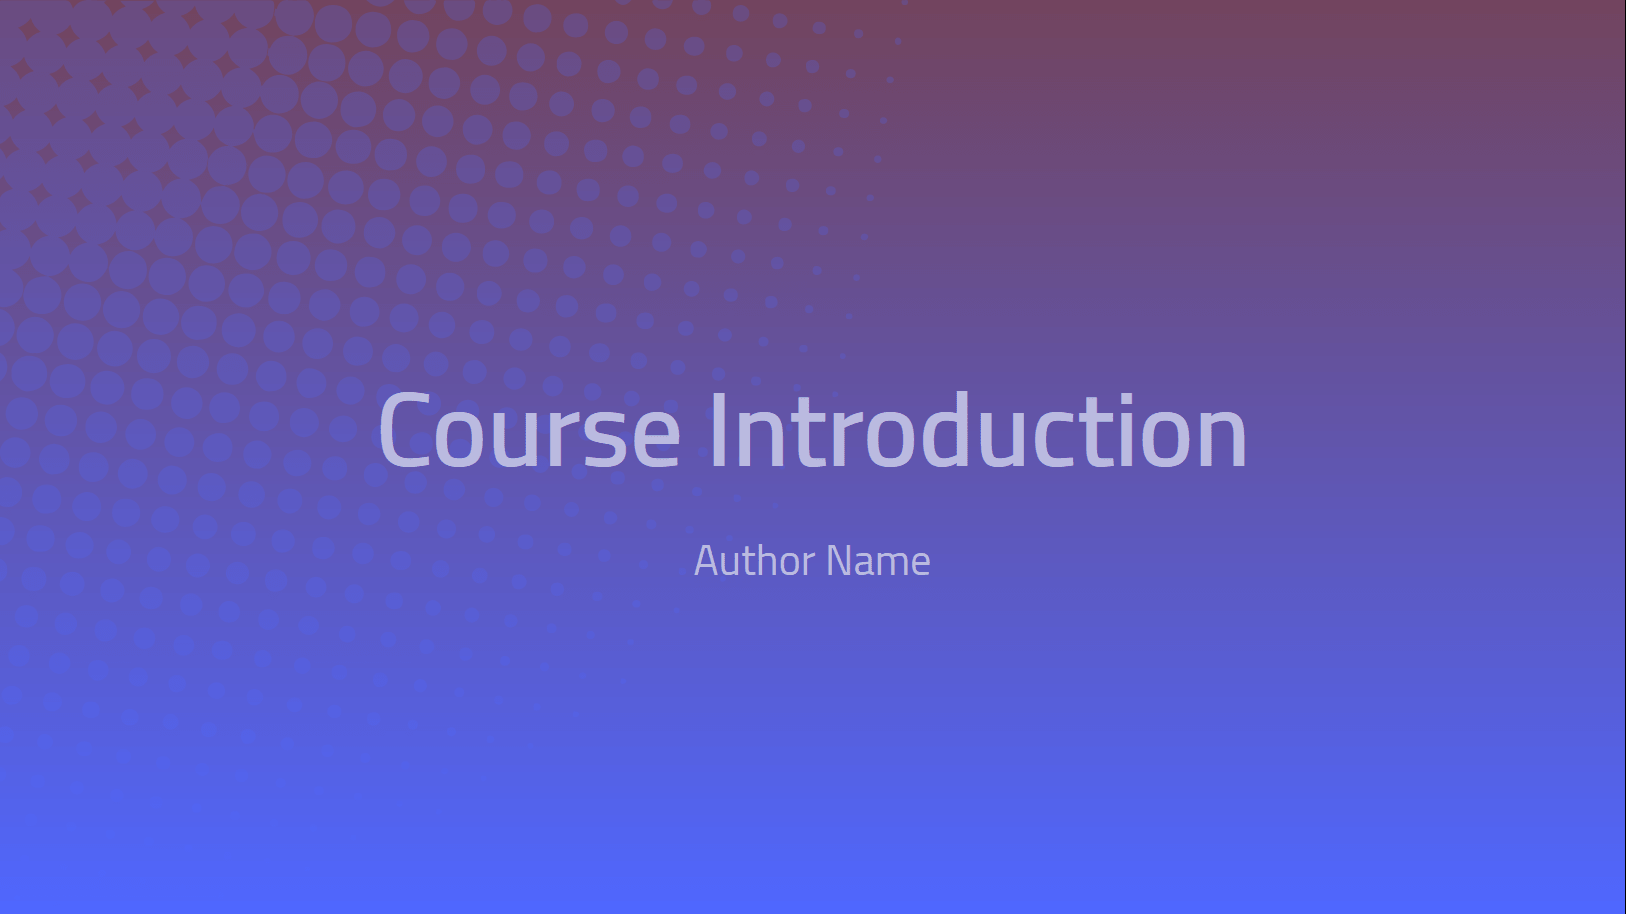 Online Course Introduction Template